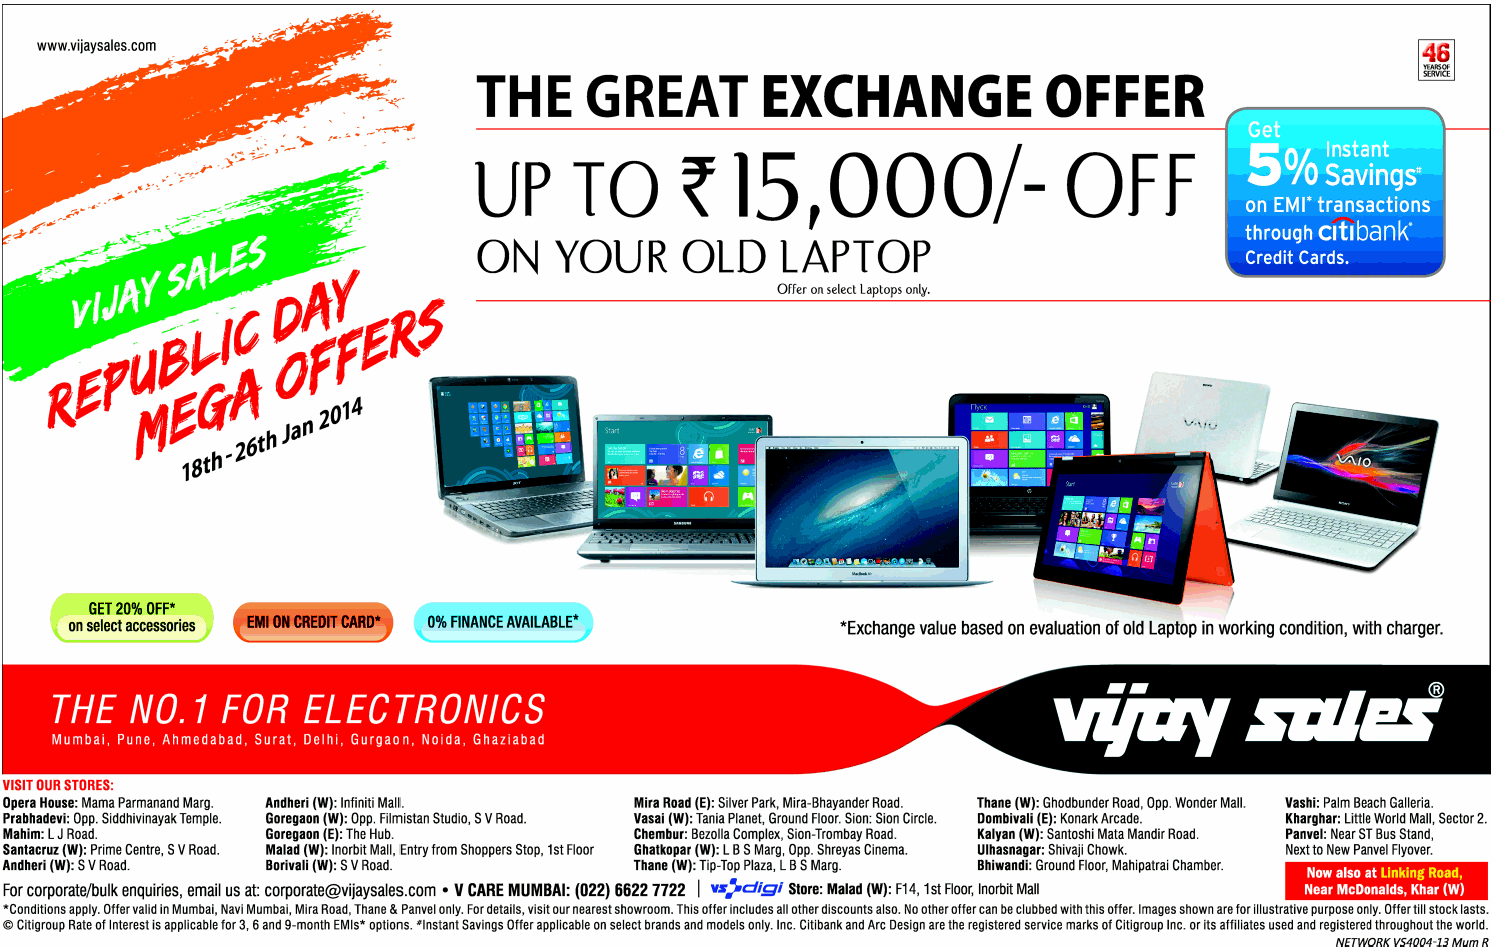 Vijay Sales - Offers on Laptop